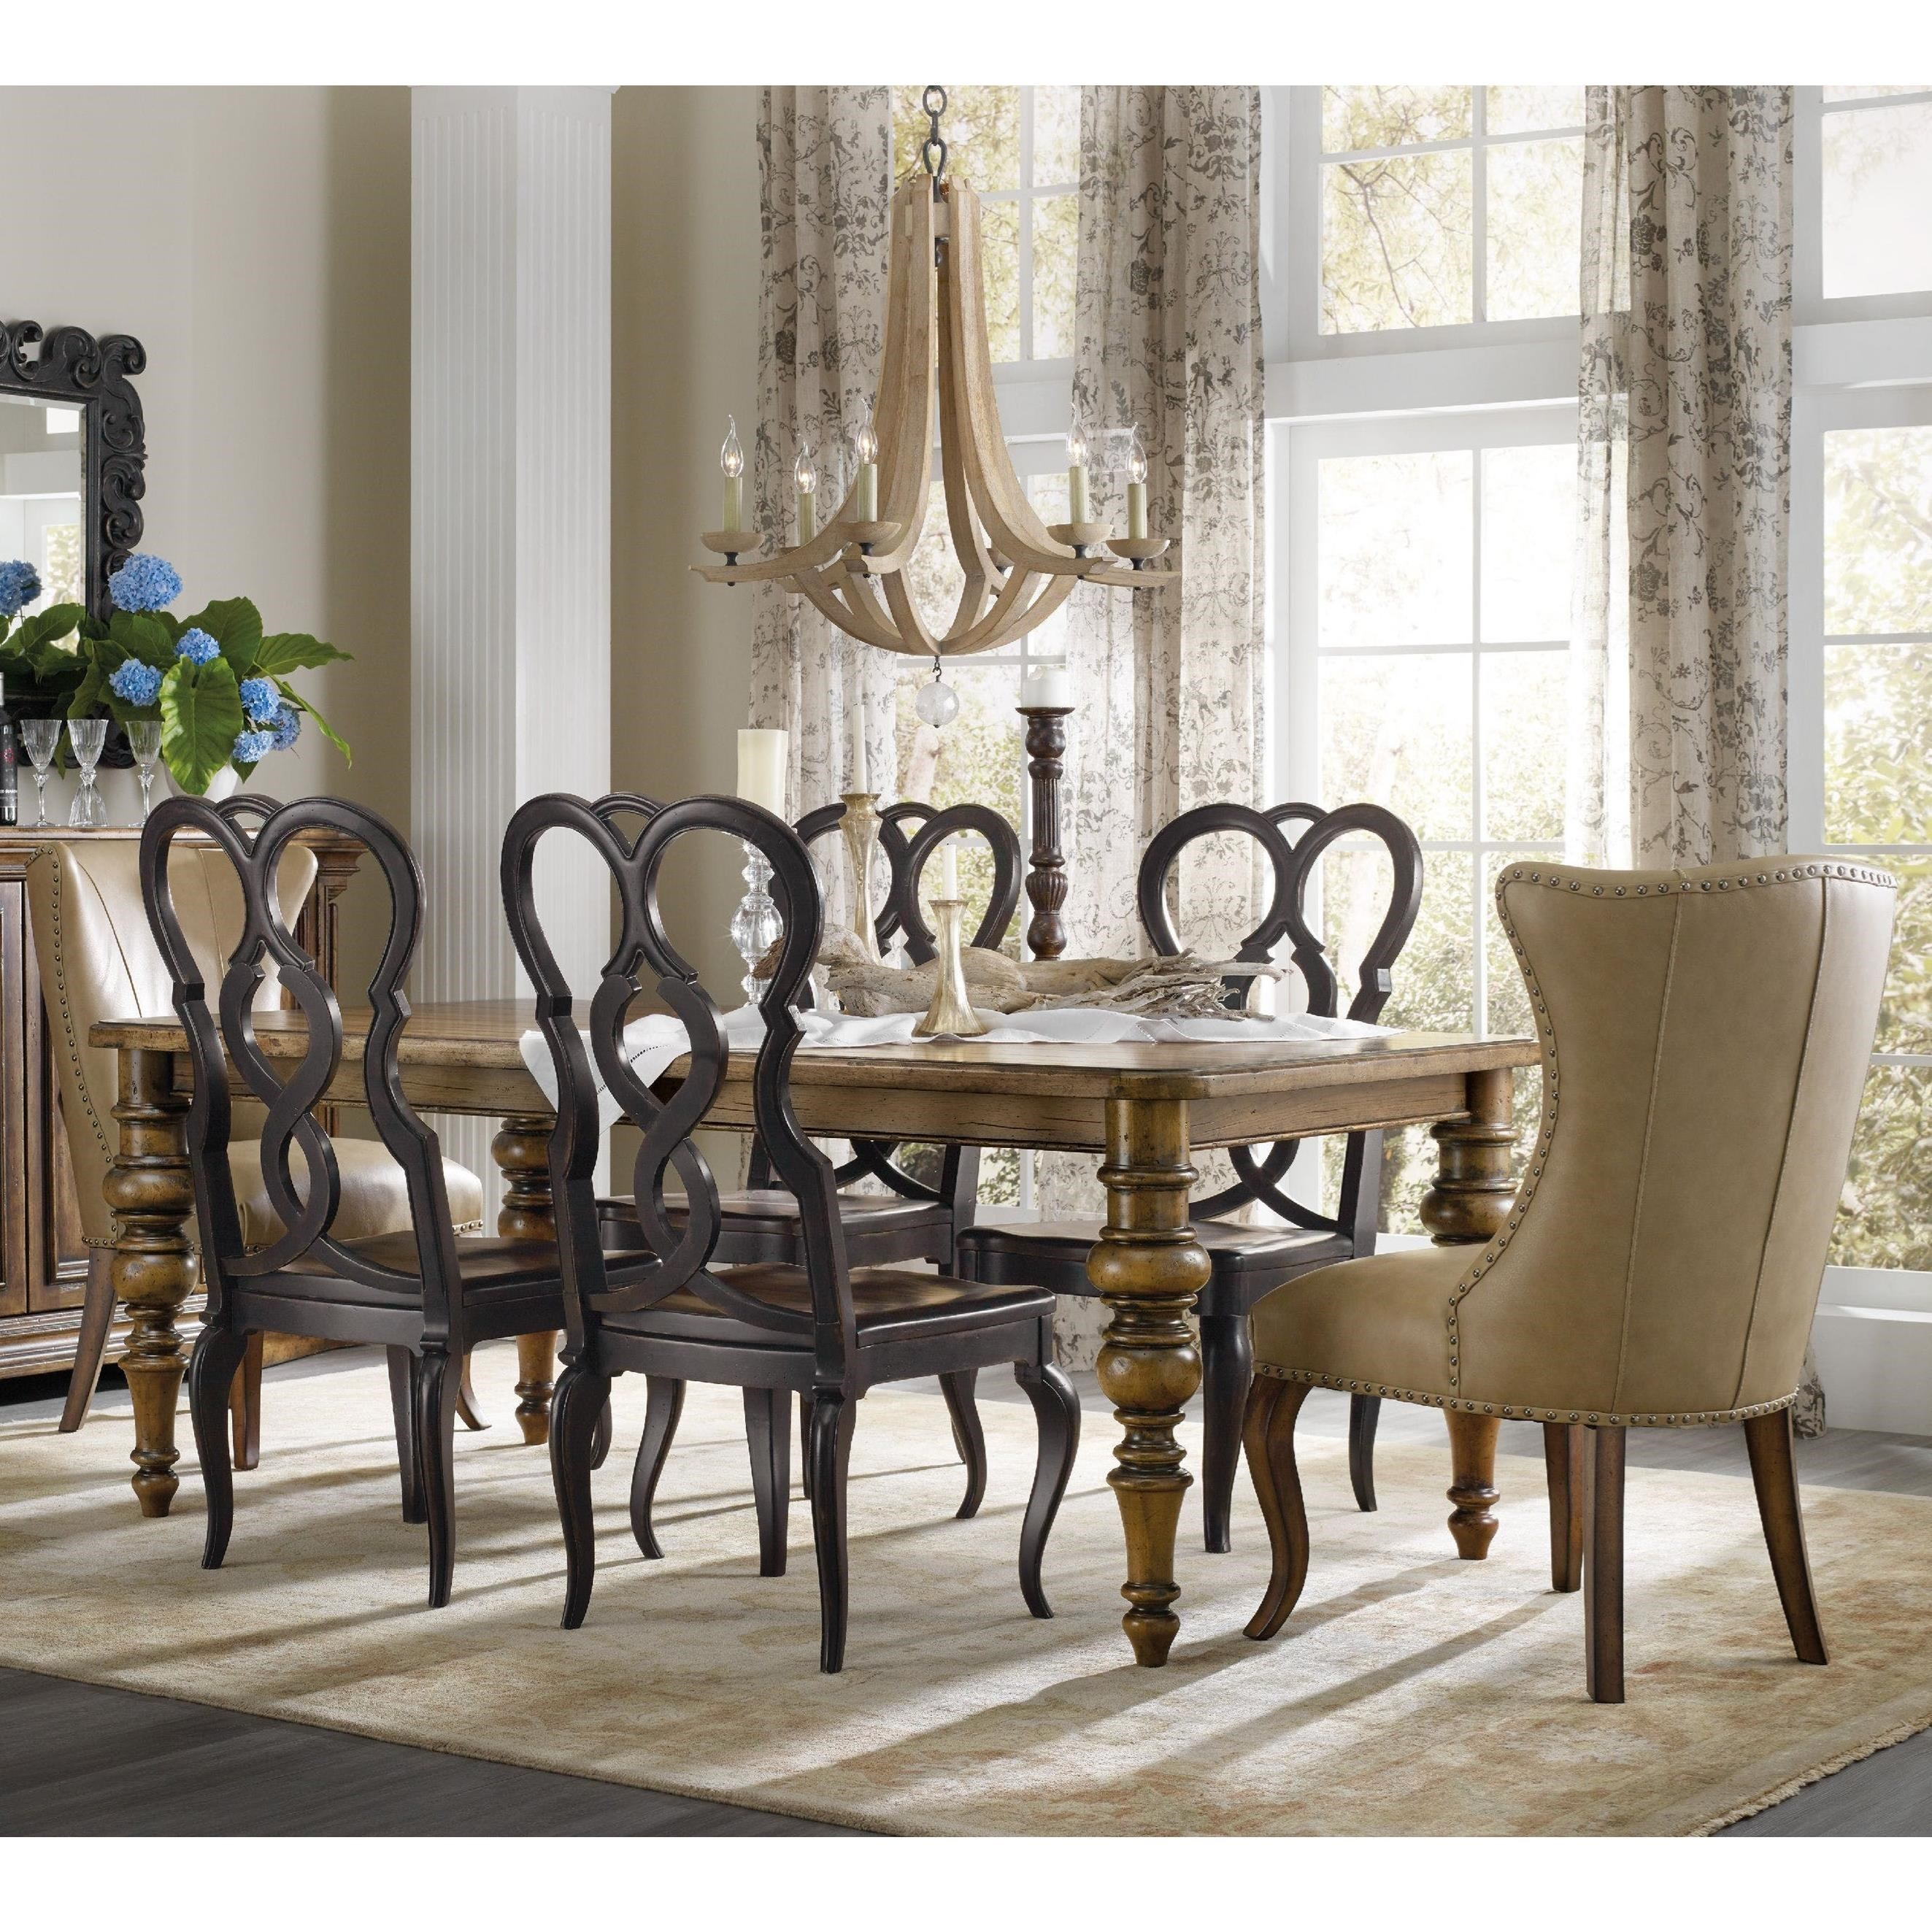 hooker furniture dining. Hooker Furniture Auberose 7 Piece Dining Set With Leather Host Chairs E